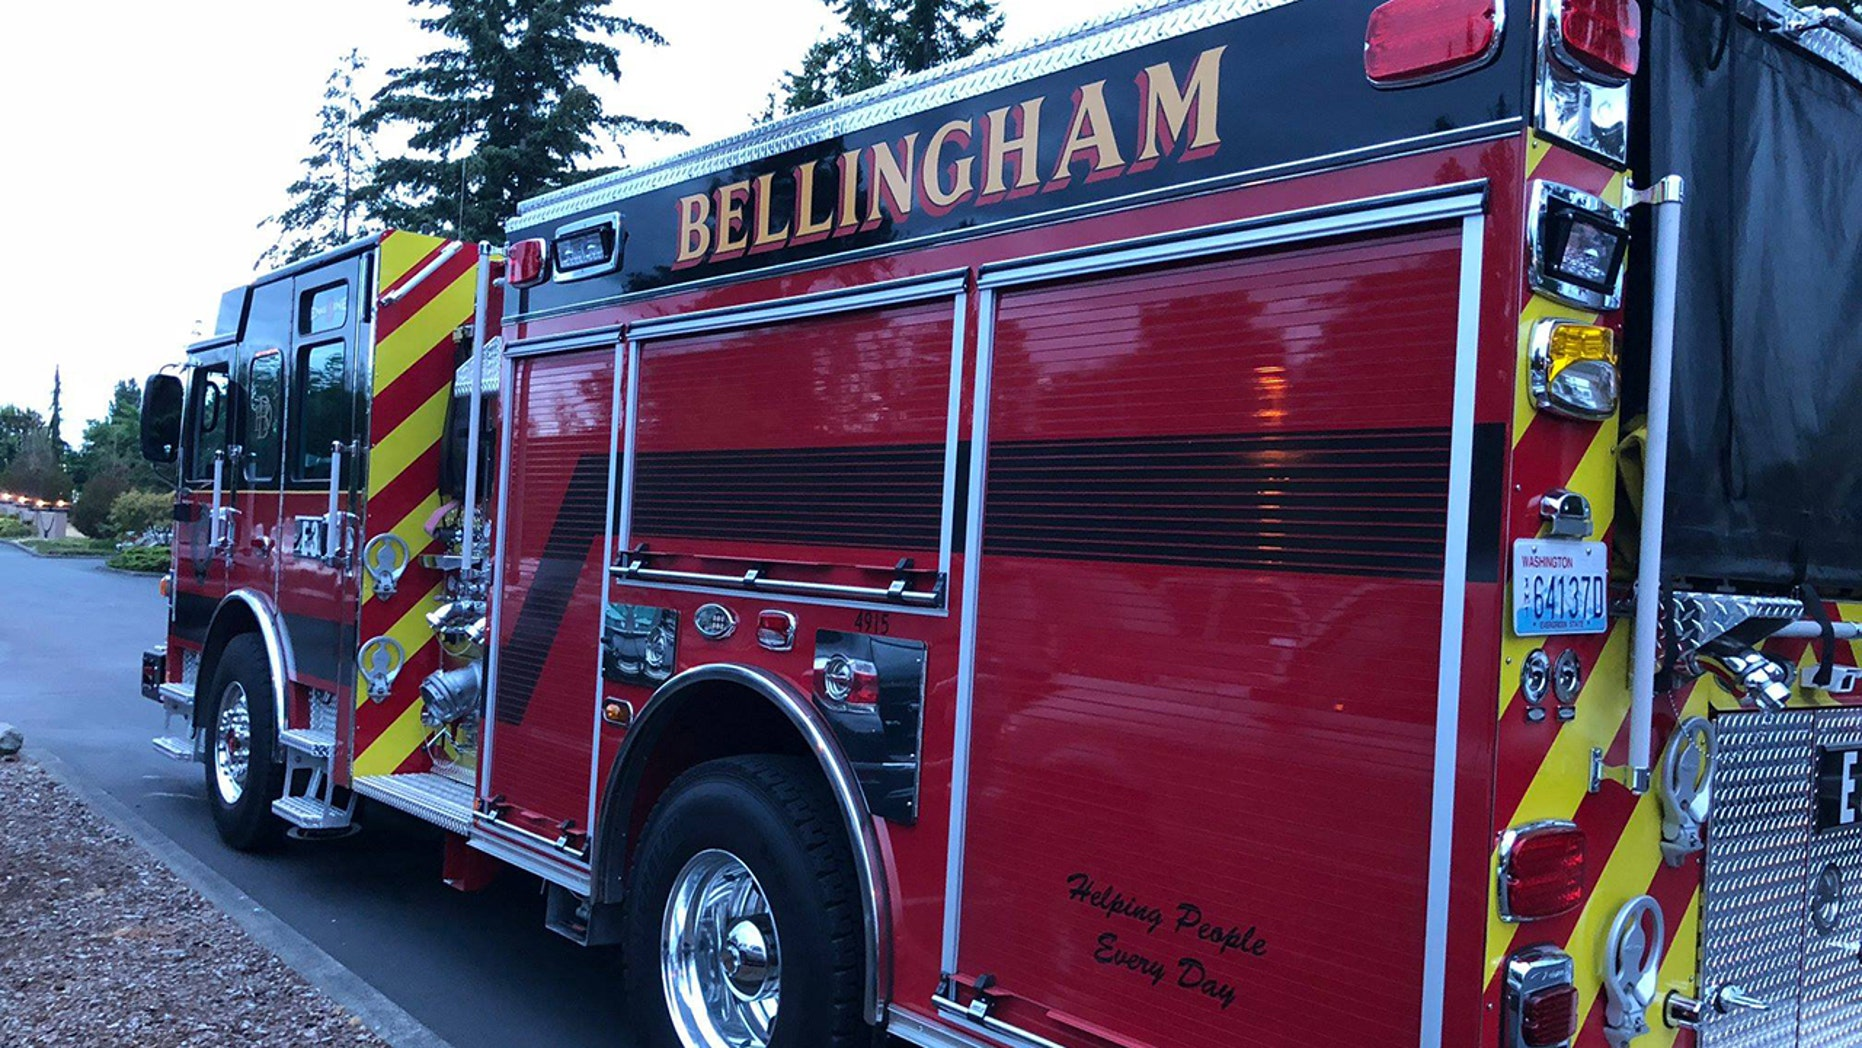 Members of the Bellingham Fire Department reportedly used the body of a recently deceased patient for training.